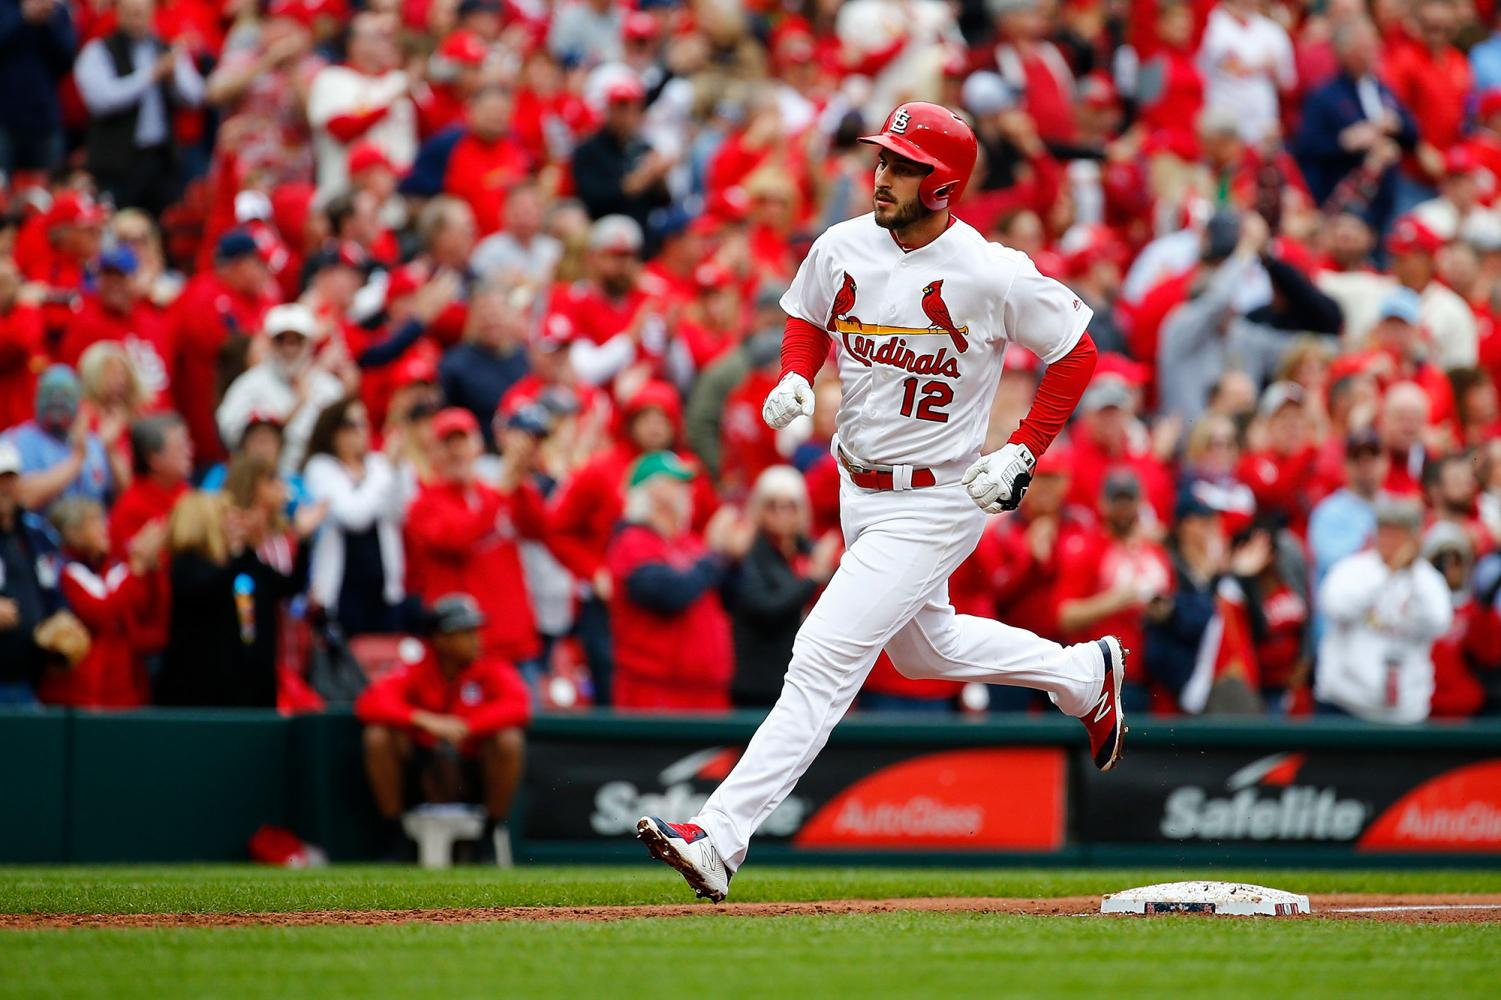 The St. Louis Cardinals' Paul DeJong rounds third base after hitting a home run against the San Diego Padres in the fourth inning at Busch Stadium in St. Louis on Friday, April 5, 2019. The Padres won, 5-3. **FOR USE WITH THIS STORY ONLY** (Dilip Vishwanat/Getty Images/TNS)